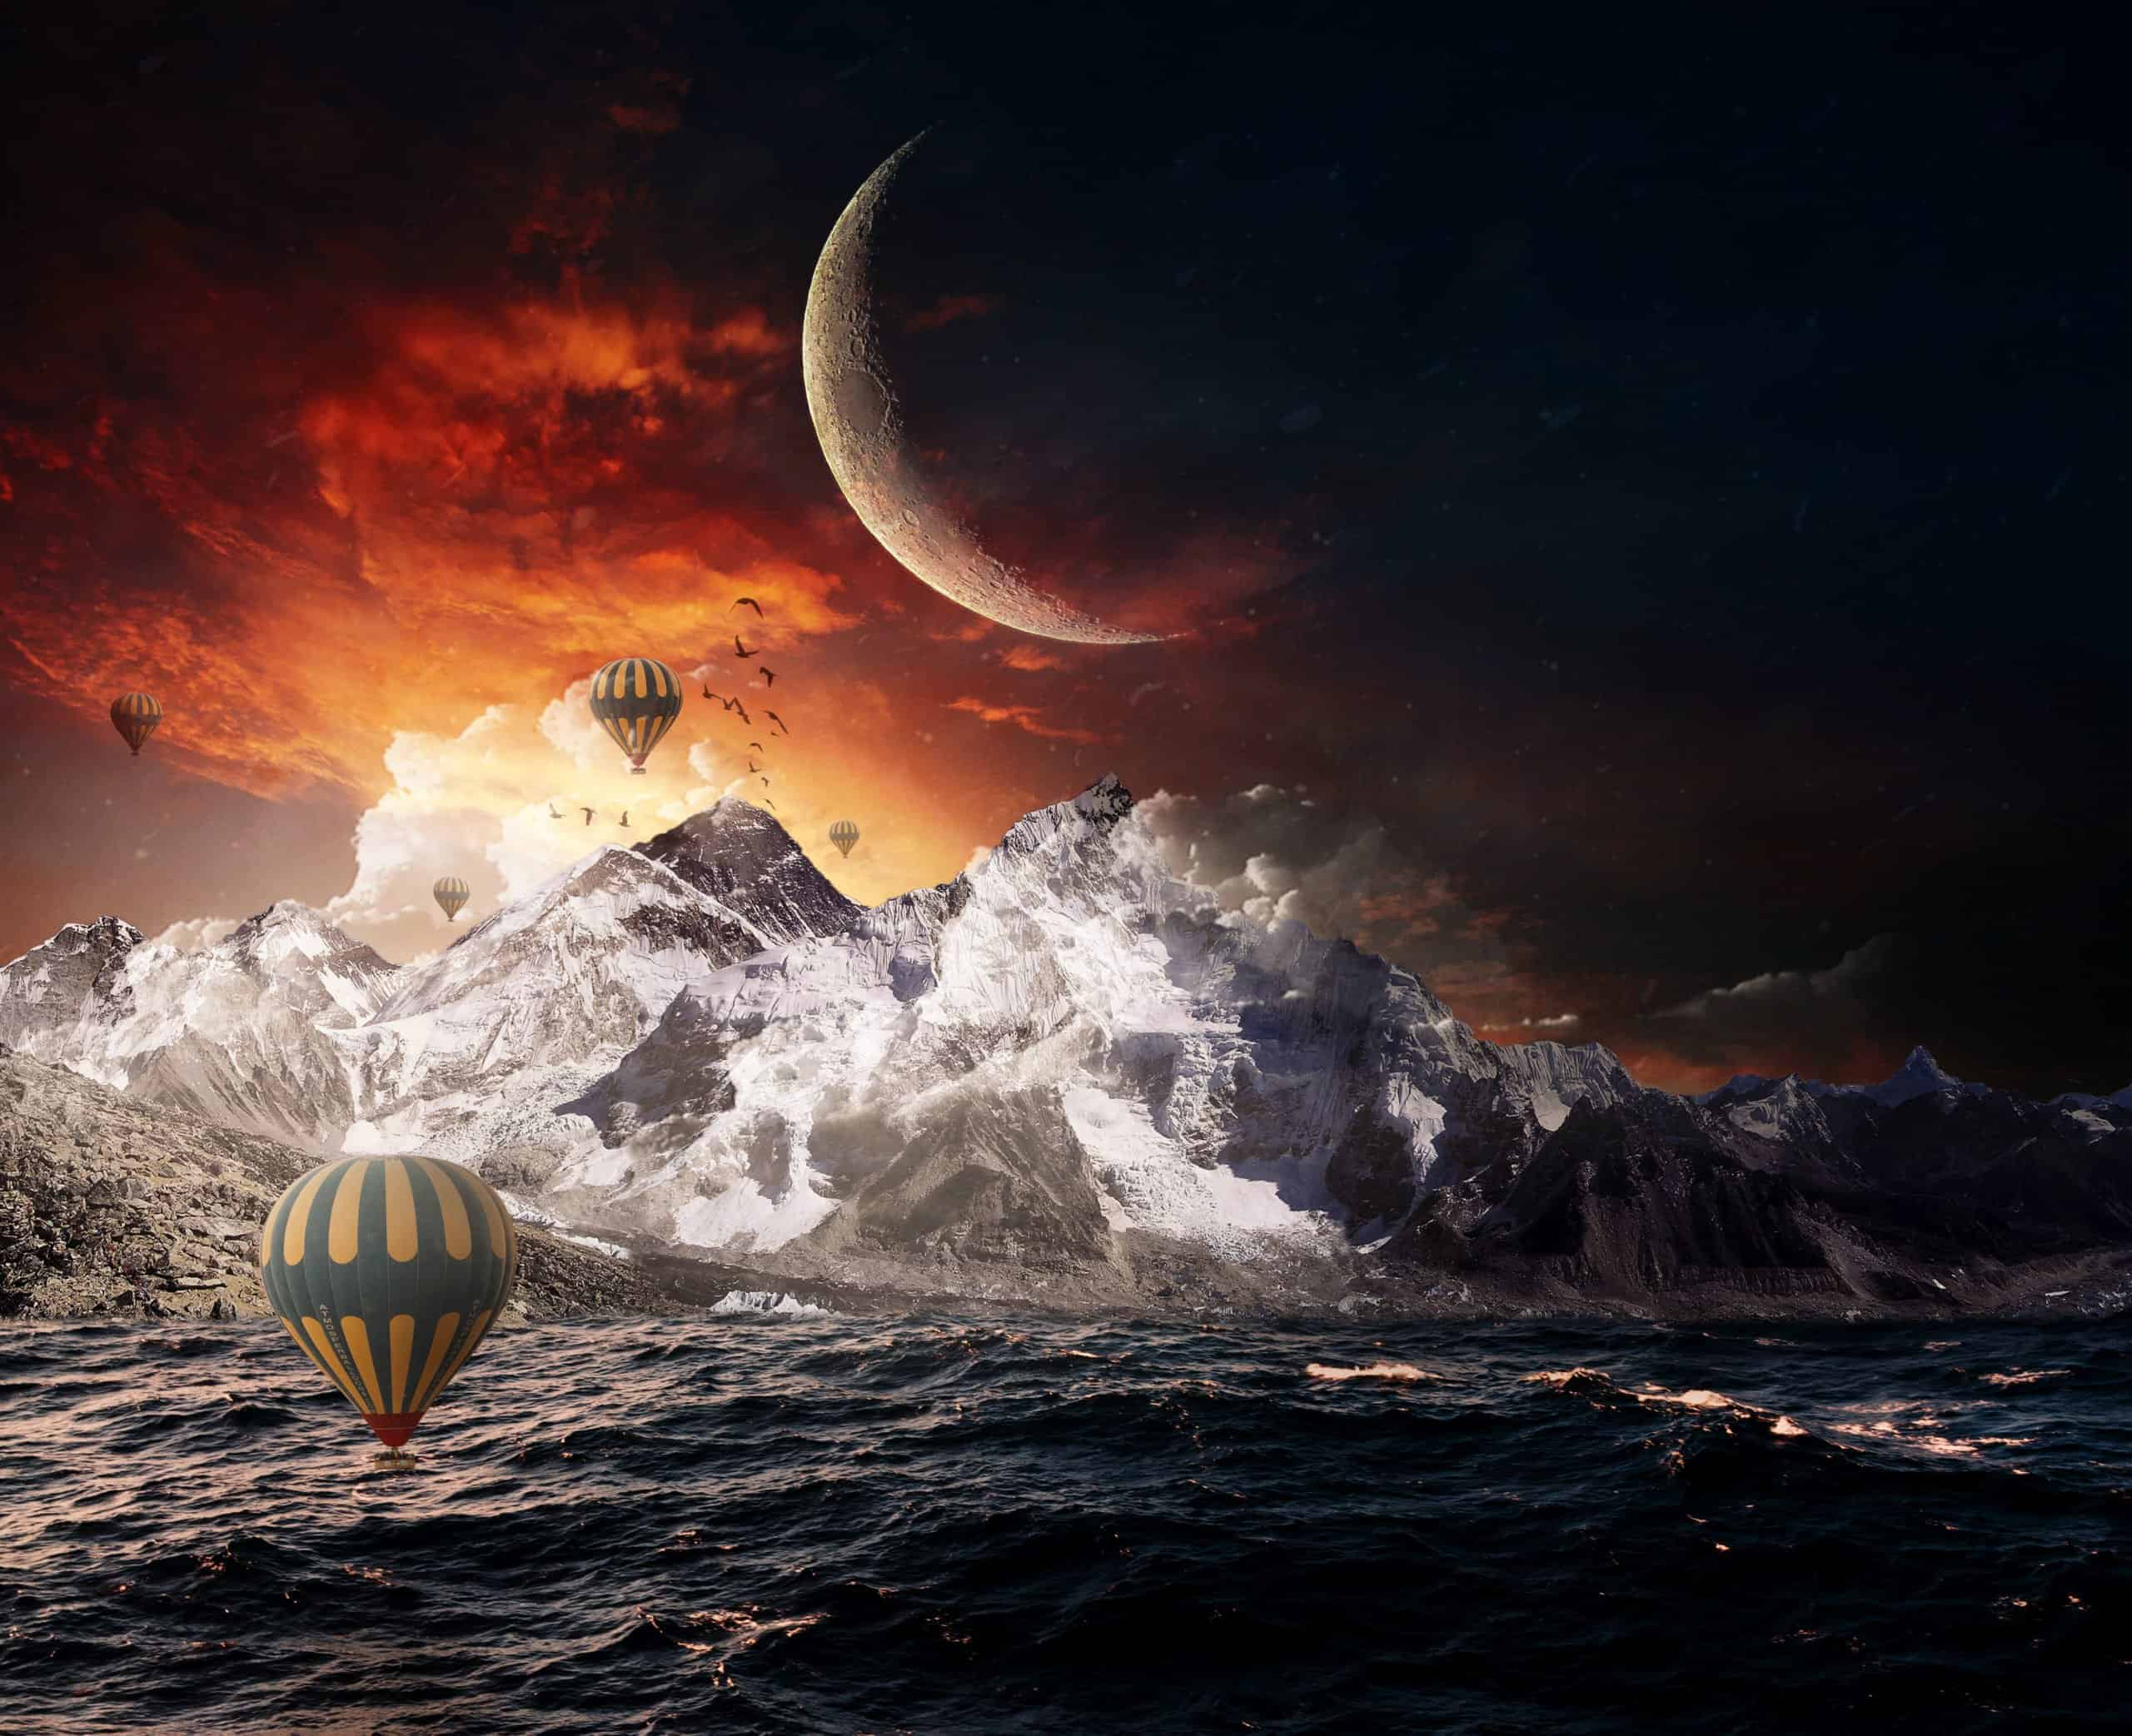 How to Create Magic Atmosphere in the Sky in Photoshop